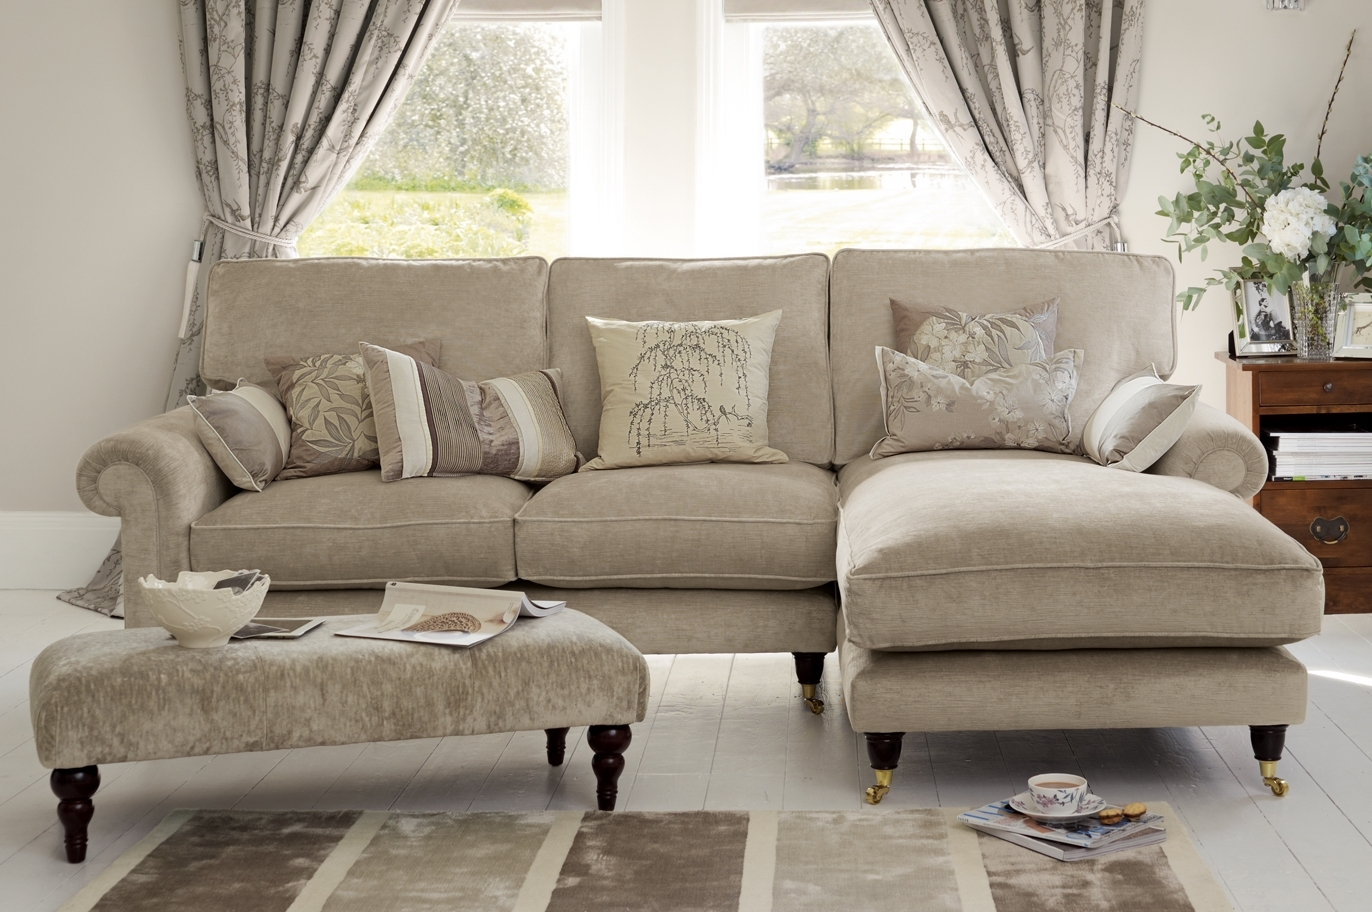 """Kingston"""" Sectional Sofa With Chaise In Sable Beige From Laura within Preferred Kingston Ontario Sectional Sofas"""